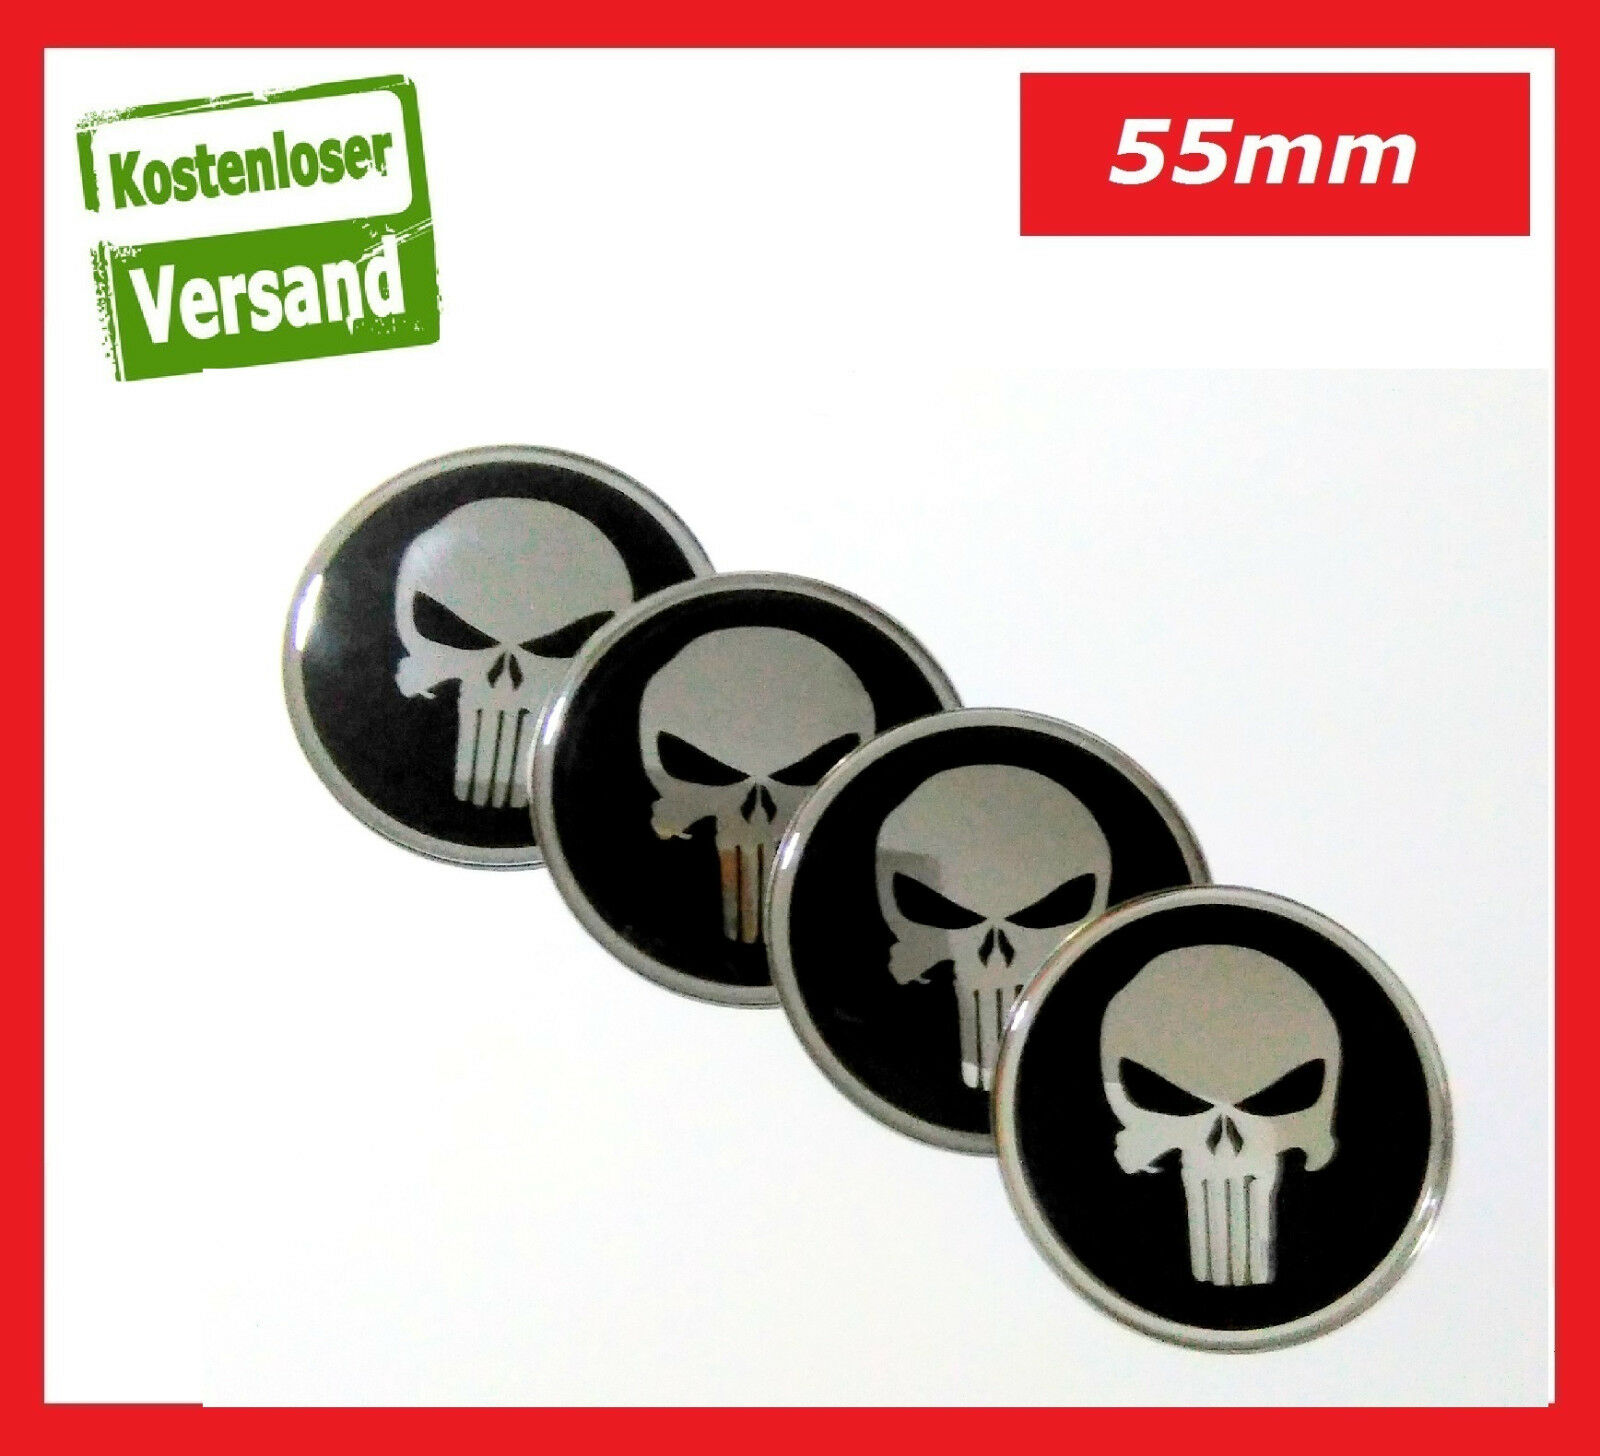 4x 56mm emblem felgen aufkleber nabendeckel felgendeckel. Black Bedroom Furniture Sets. Home Design Ideas